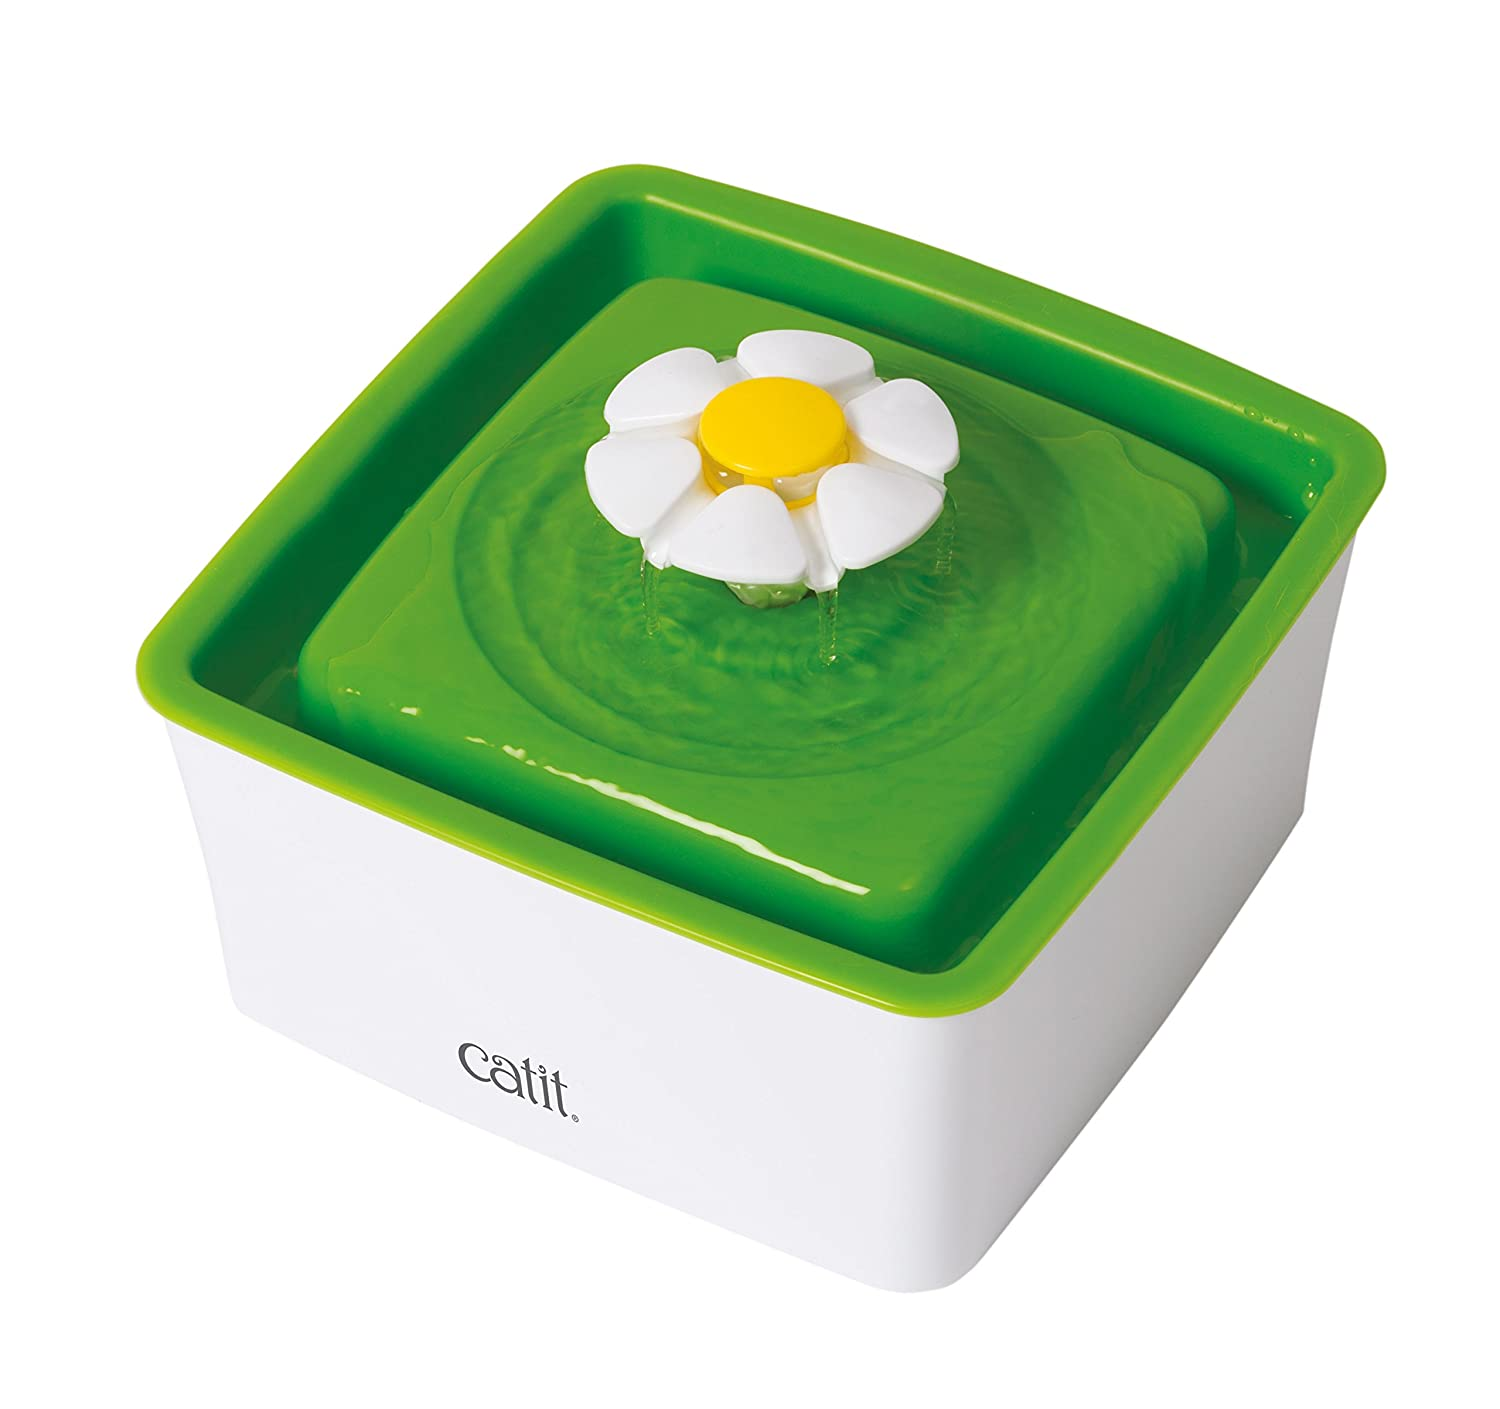 Catit Mini Fountain Filter